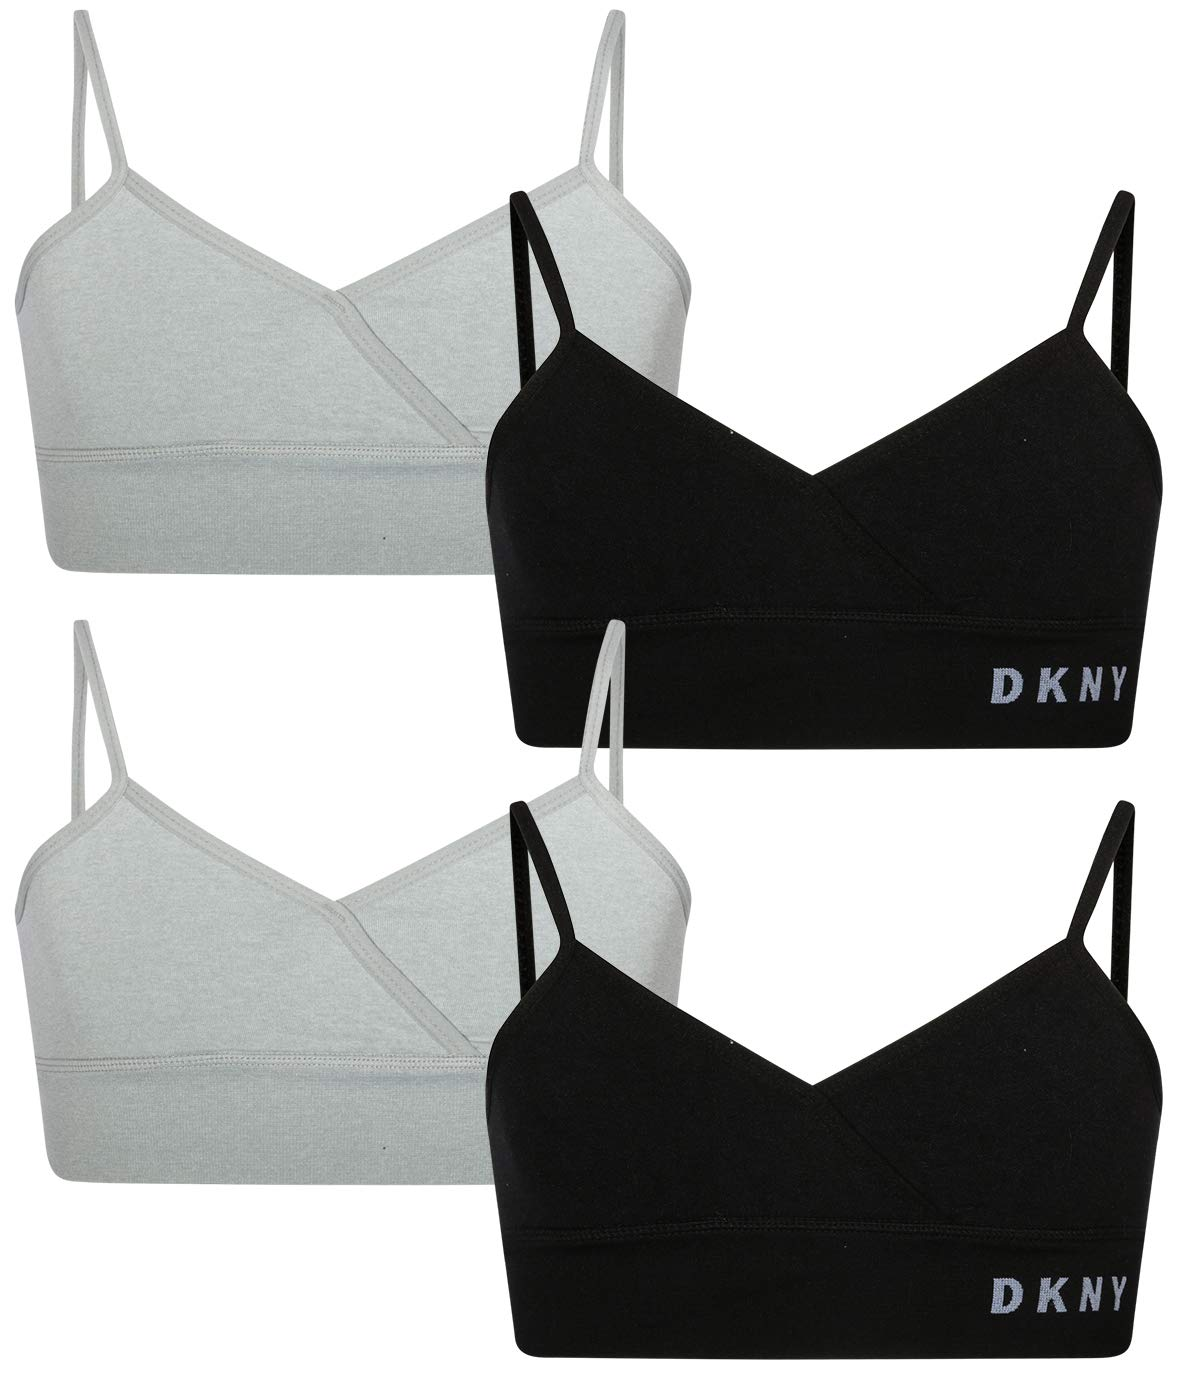 DKNY Girls Seamless Crossover Training Bra with Adjustable Straps (4 Pack)